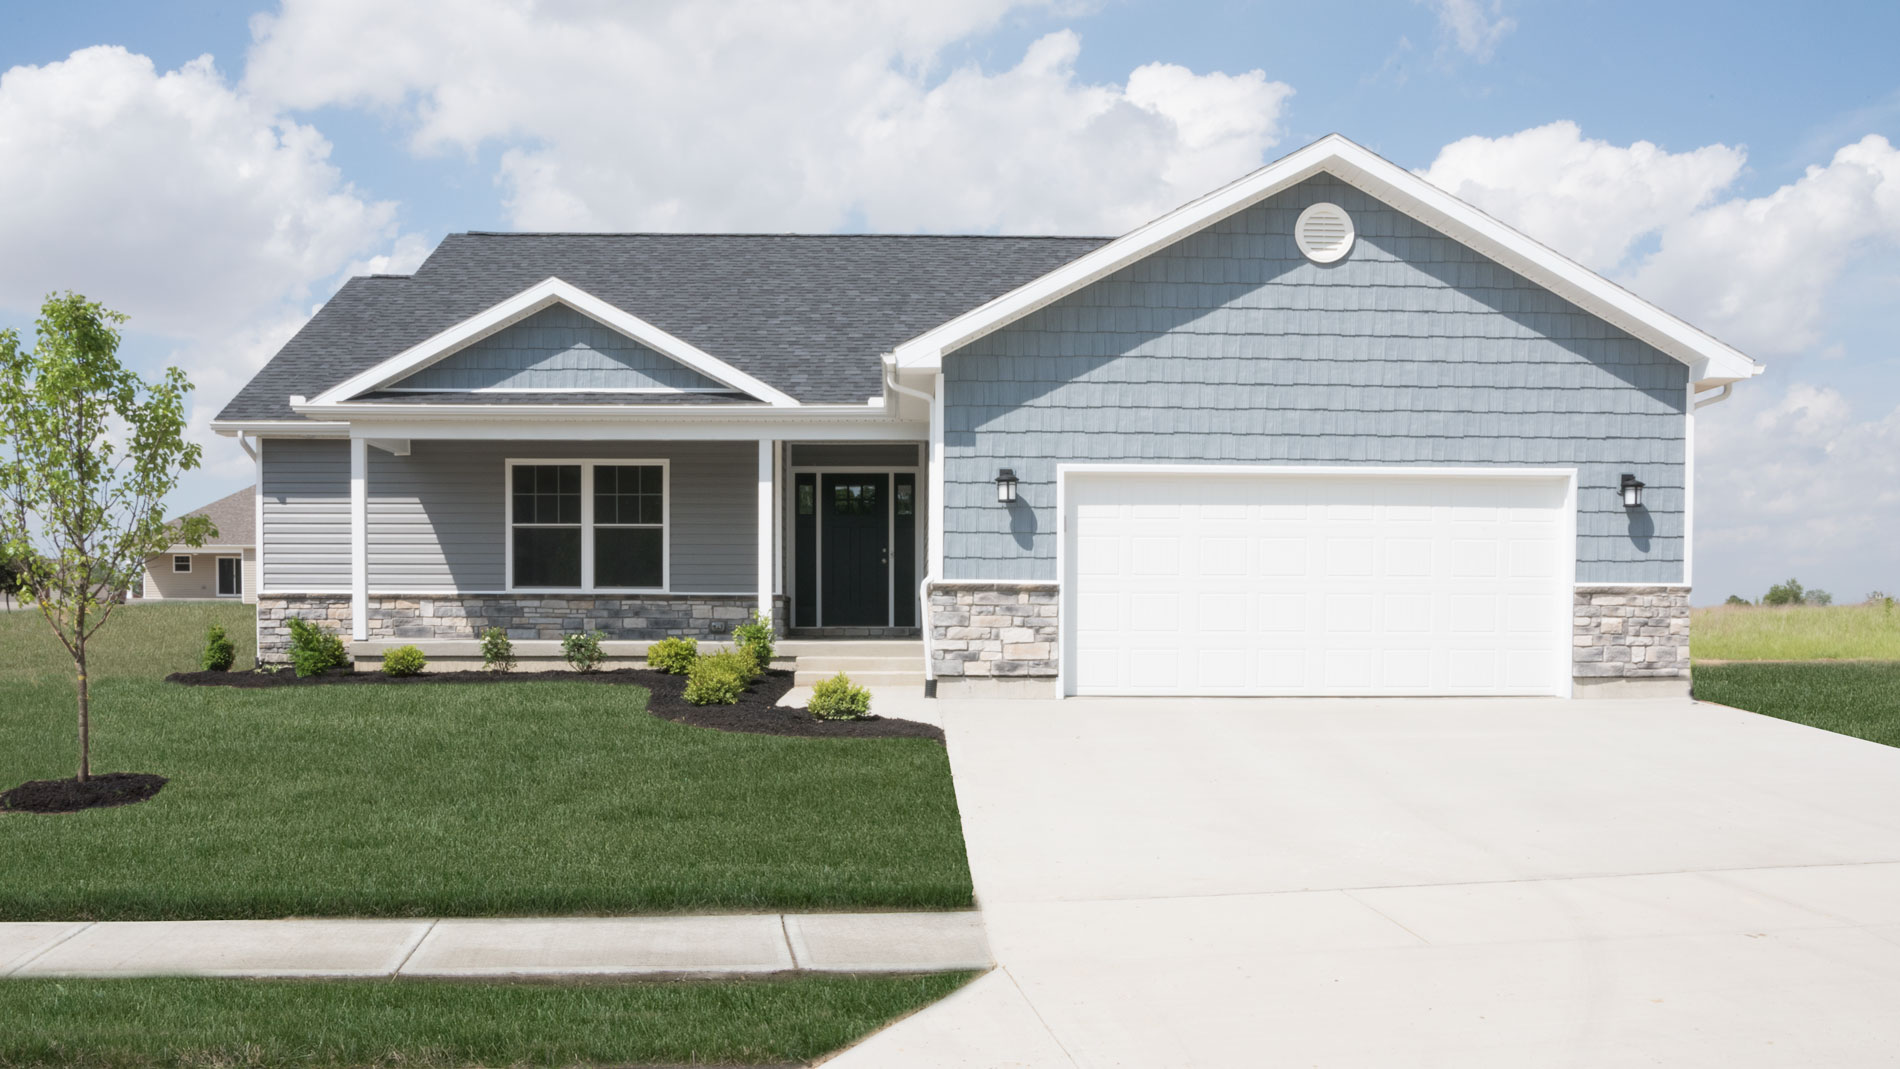 Exteriors harlow builders inc for Ranch homes with vinyl siding